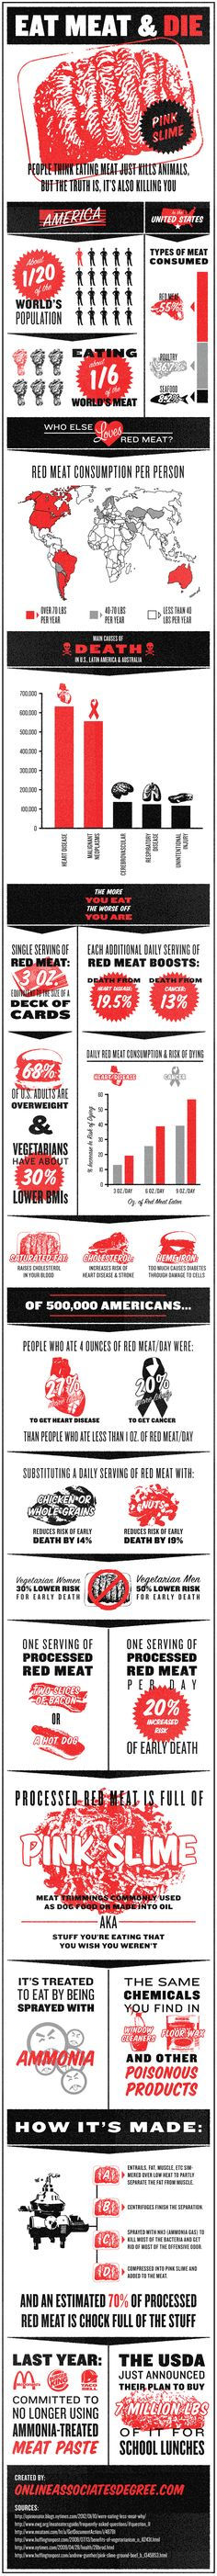 There is a reason why we should eat less meat - have a look at this infographic